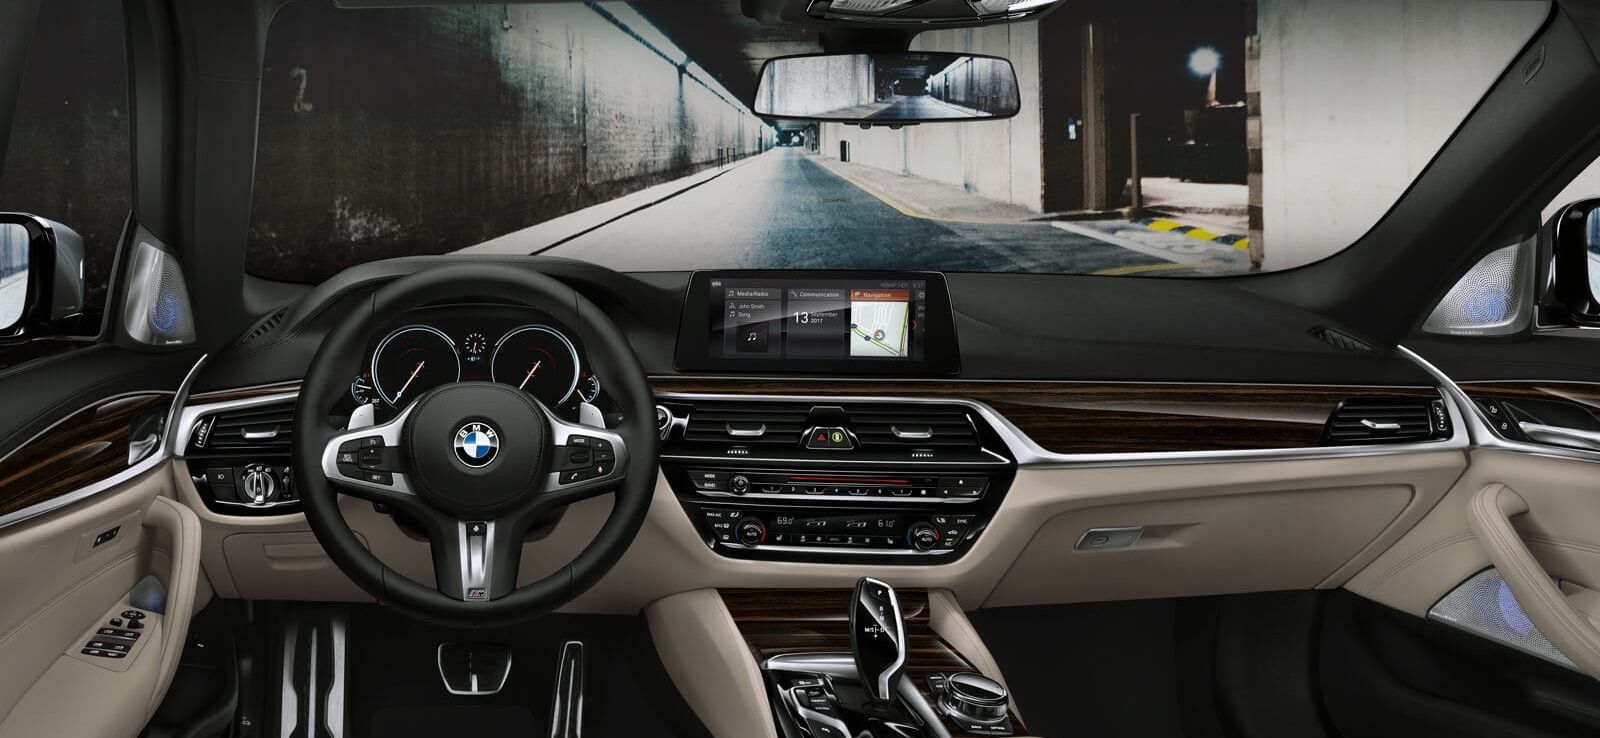 Striking Interior of the BMW 5 Series